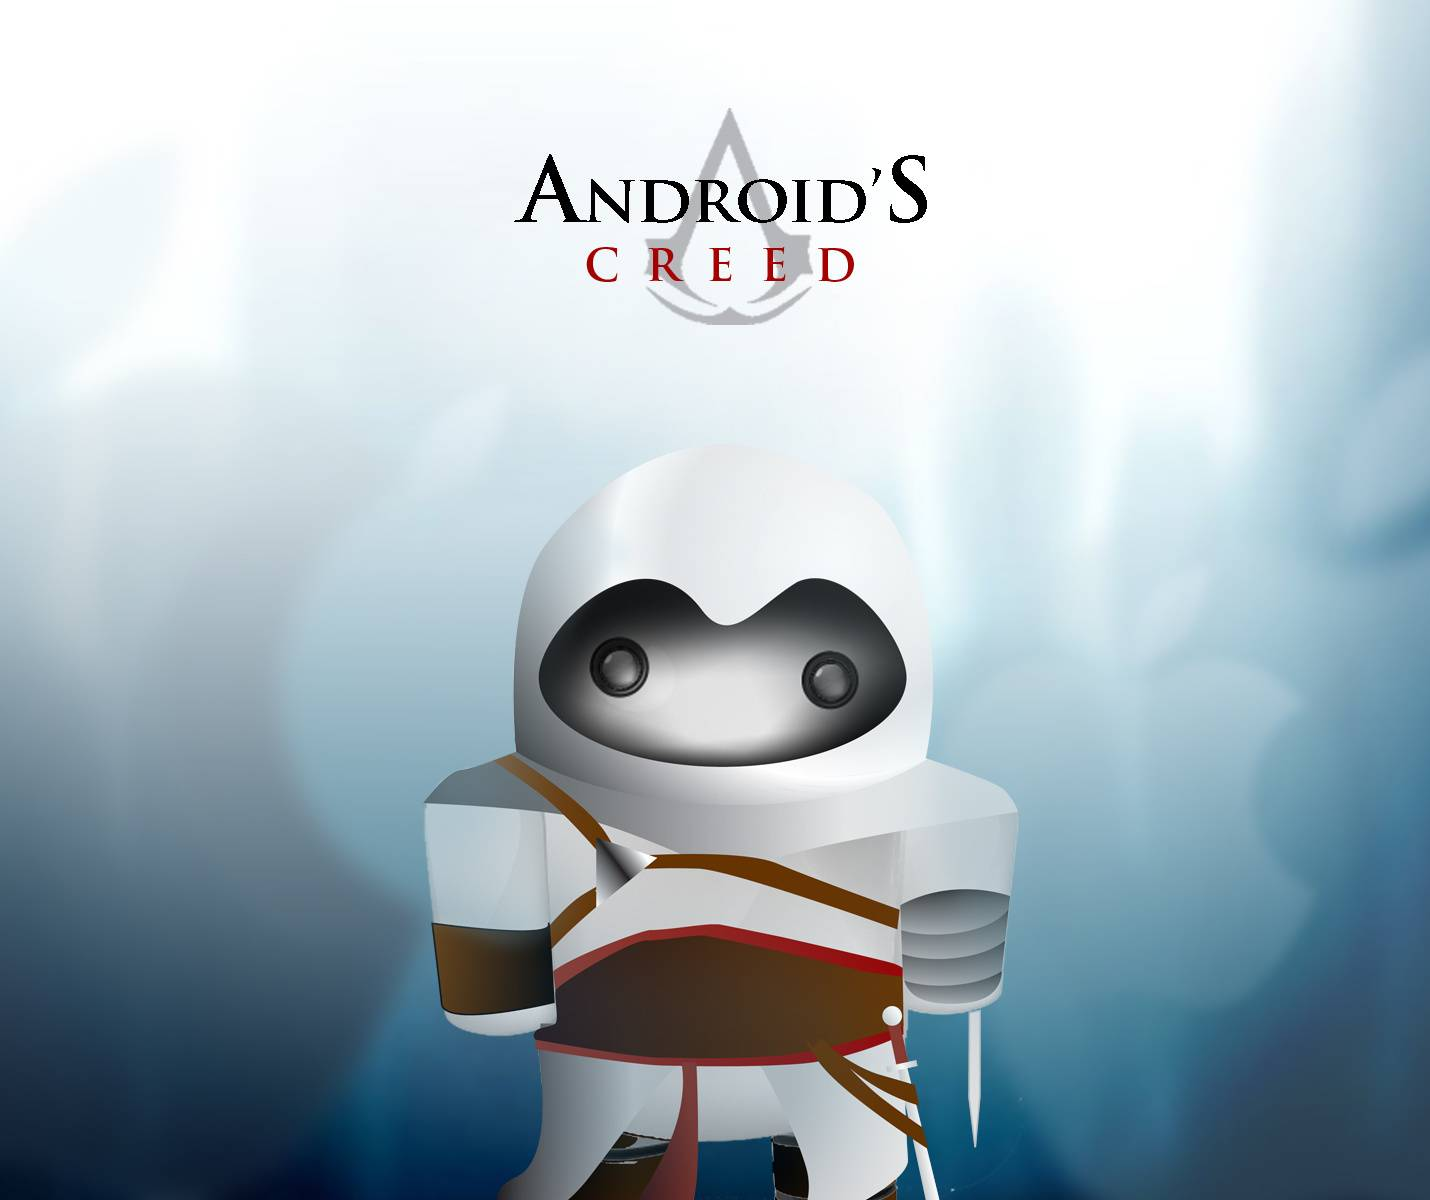 Androids Creed